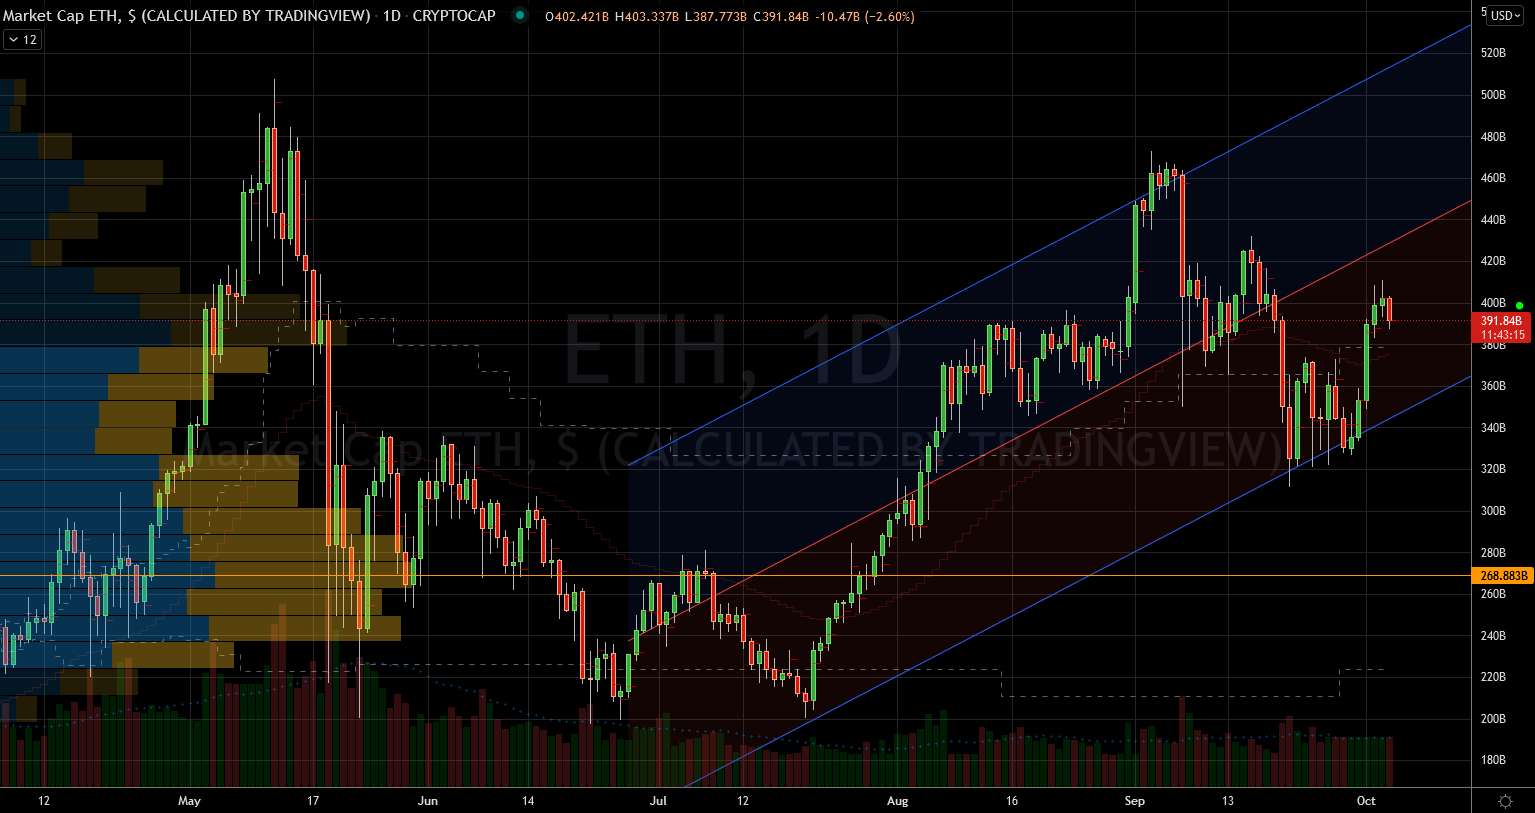 Crypto Coins: Ethereum (ETH-USD) Stock Chart Showing Market Cap